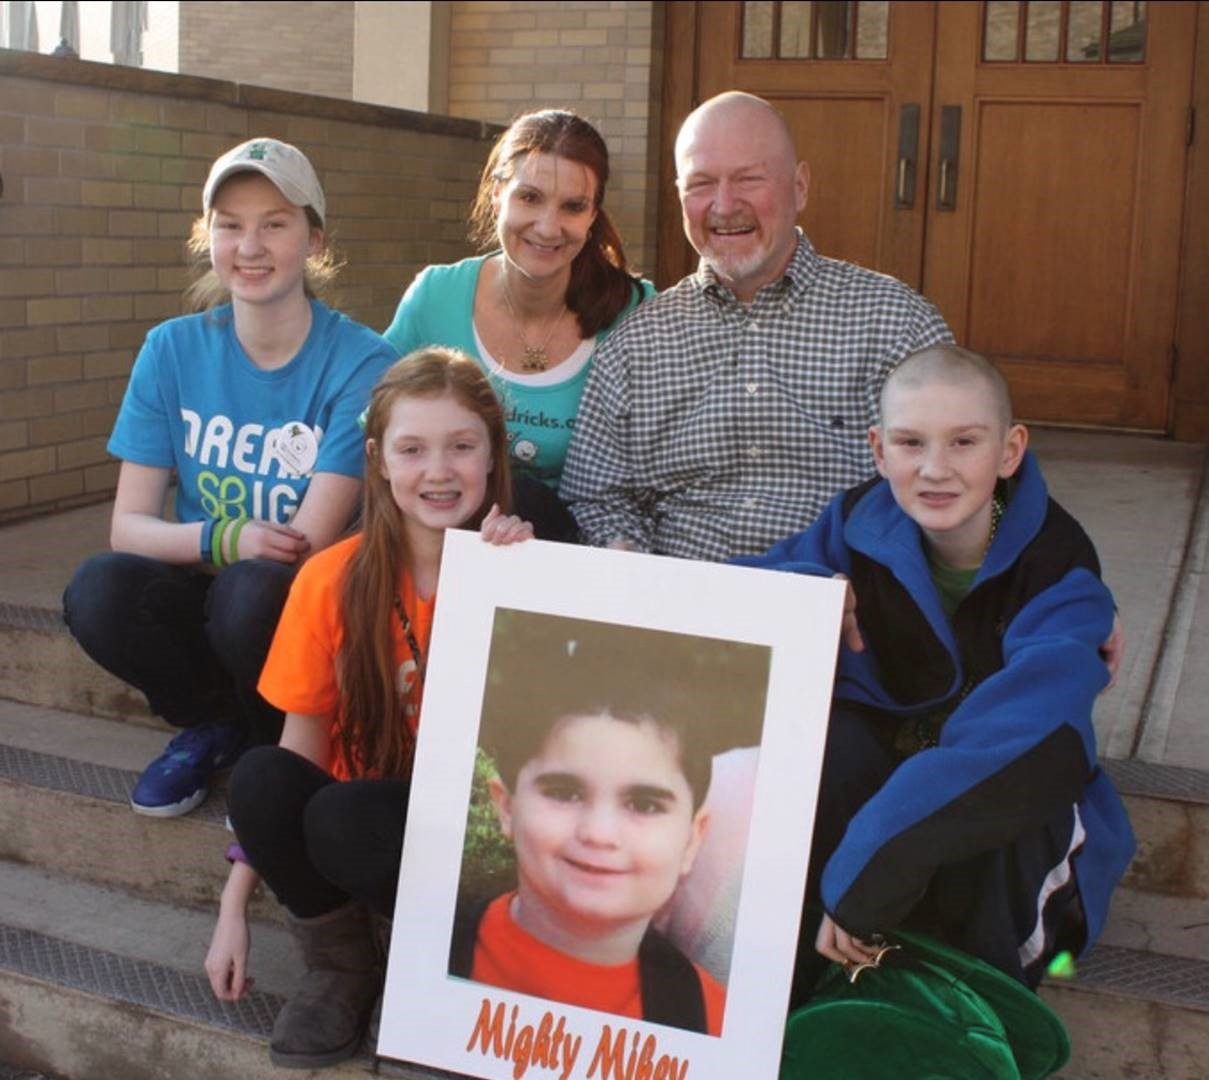 John Bender appears with members of his family in 2009. They're holding a photo of Mighty Mikey, who died after being diagnosed with brain and spinal tumors.